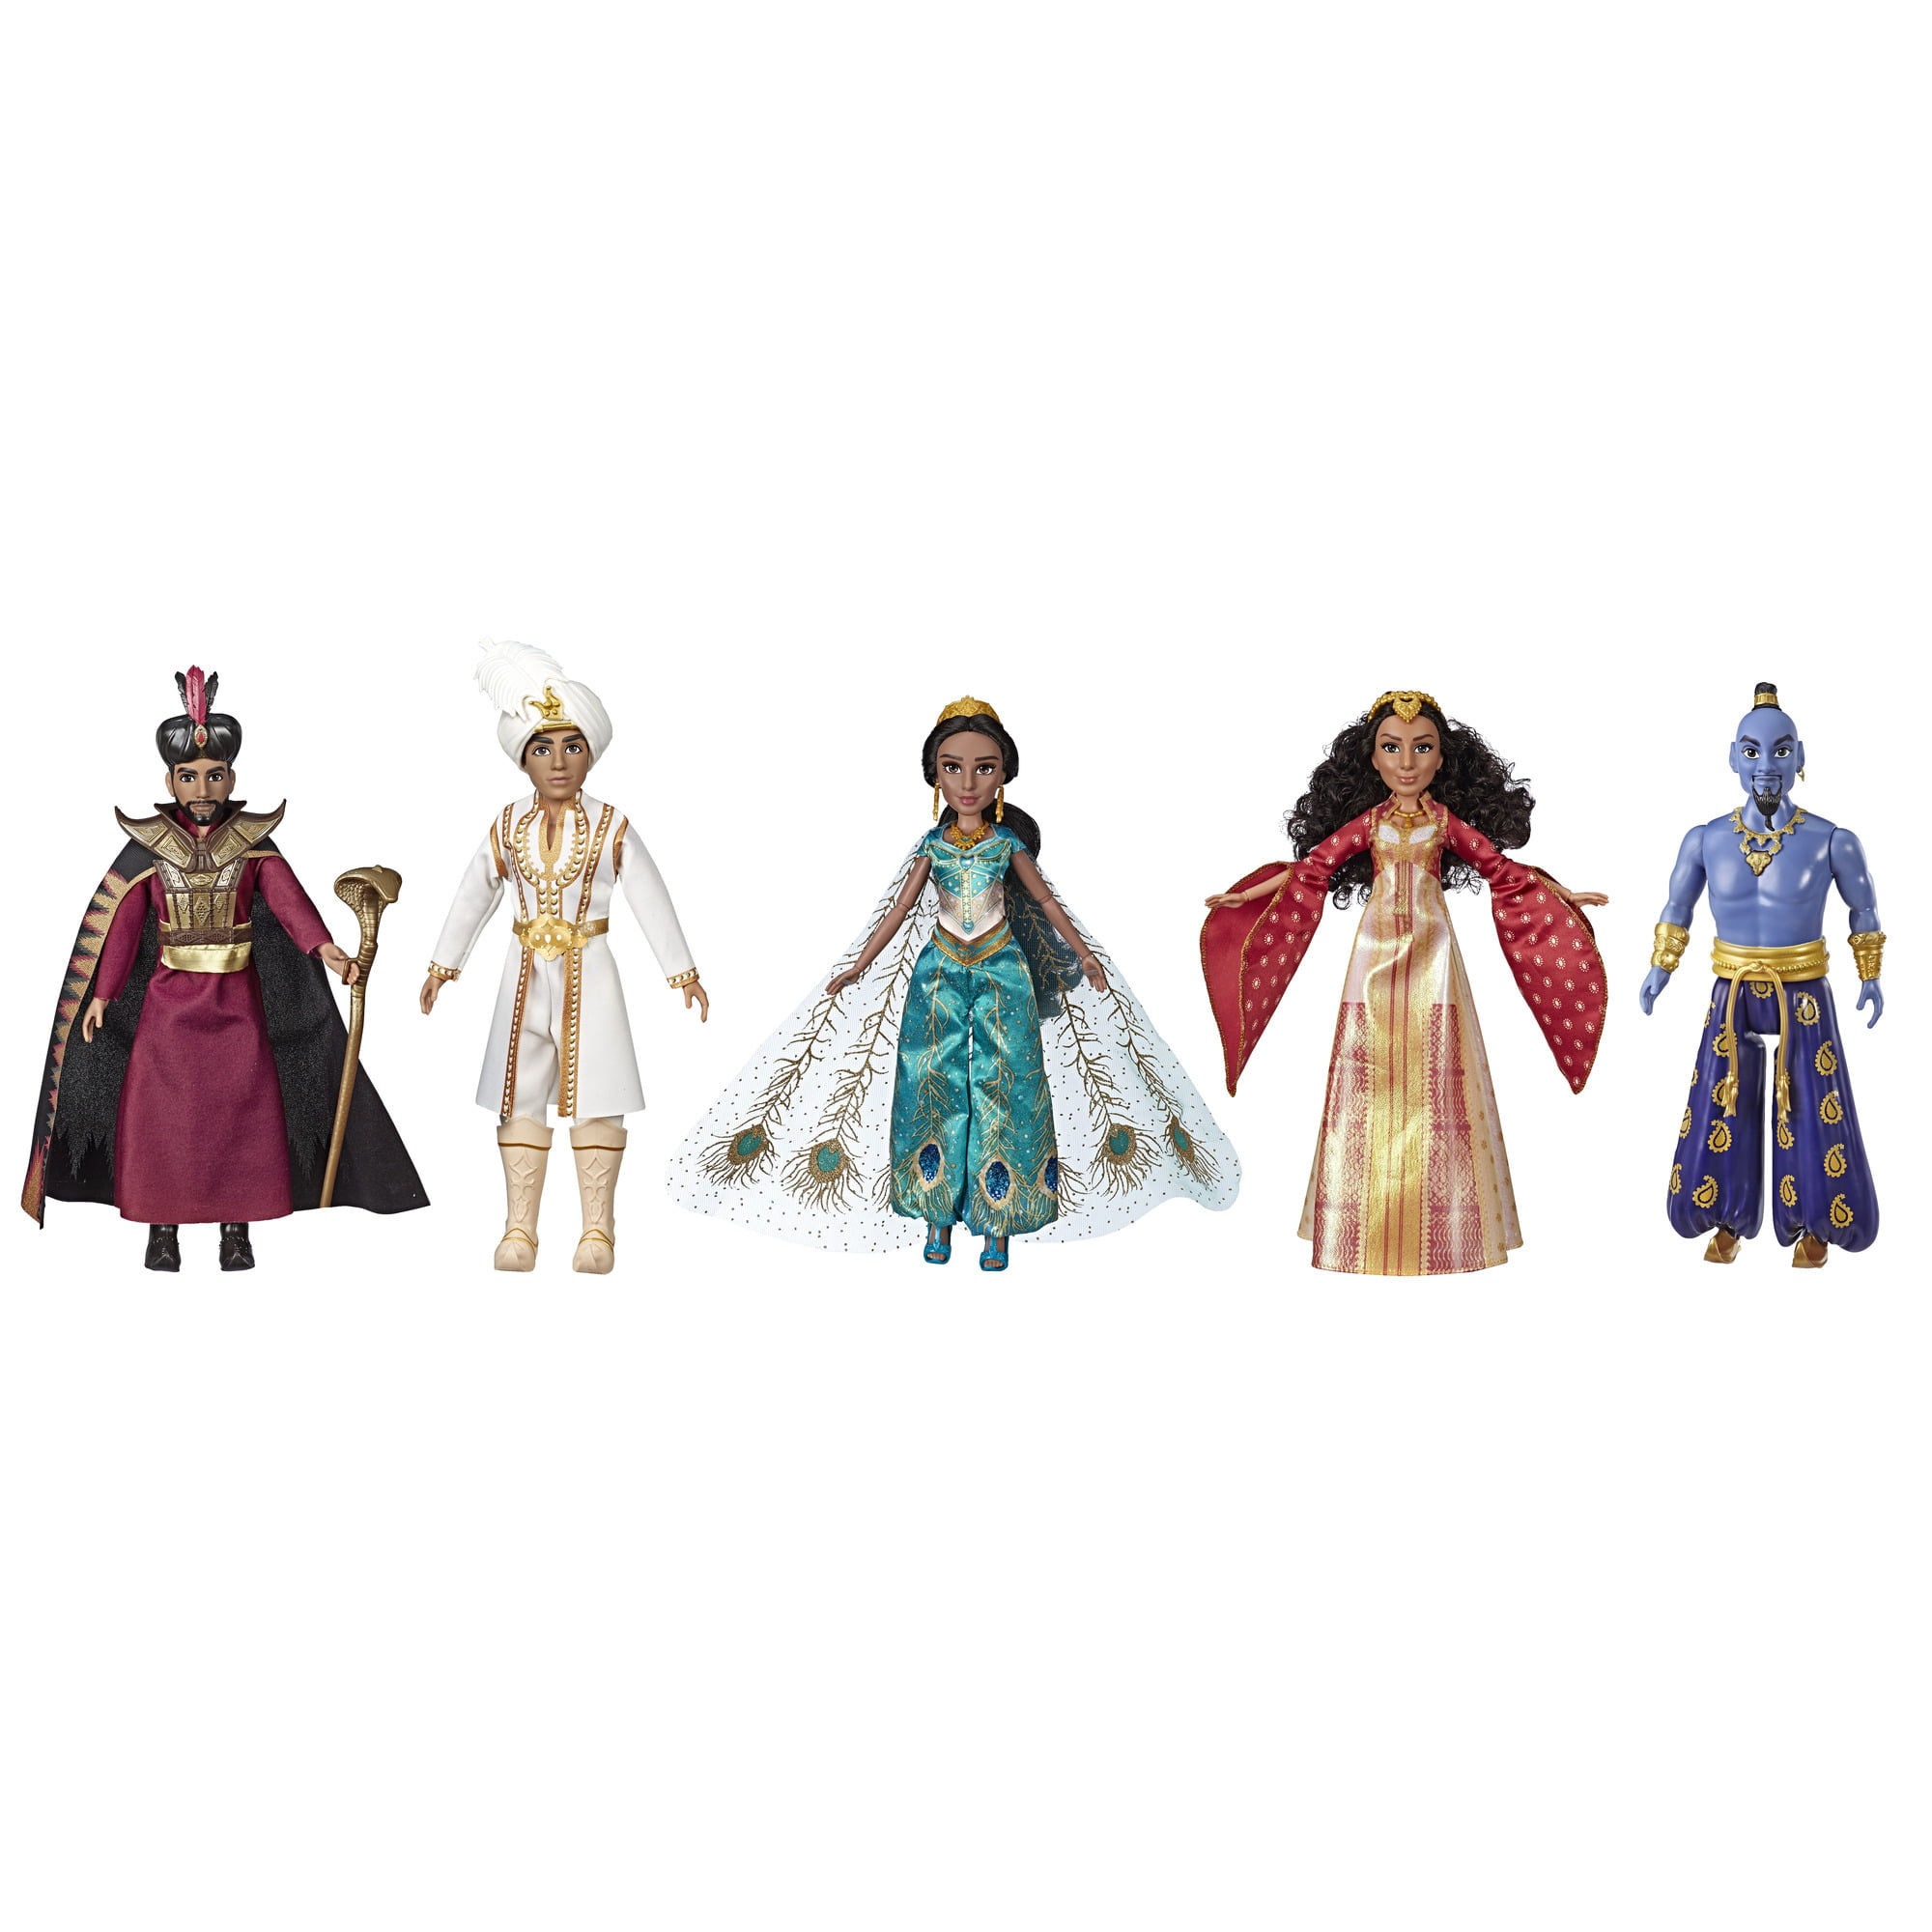 Disney Aladdin Agrabah Collection with 5 Fashion Dolls Live-Action Movie Kid Toy